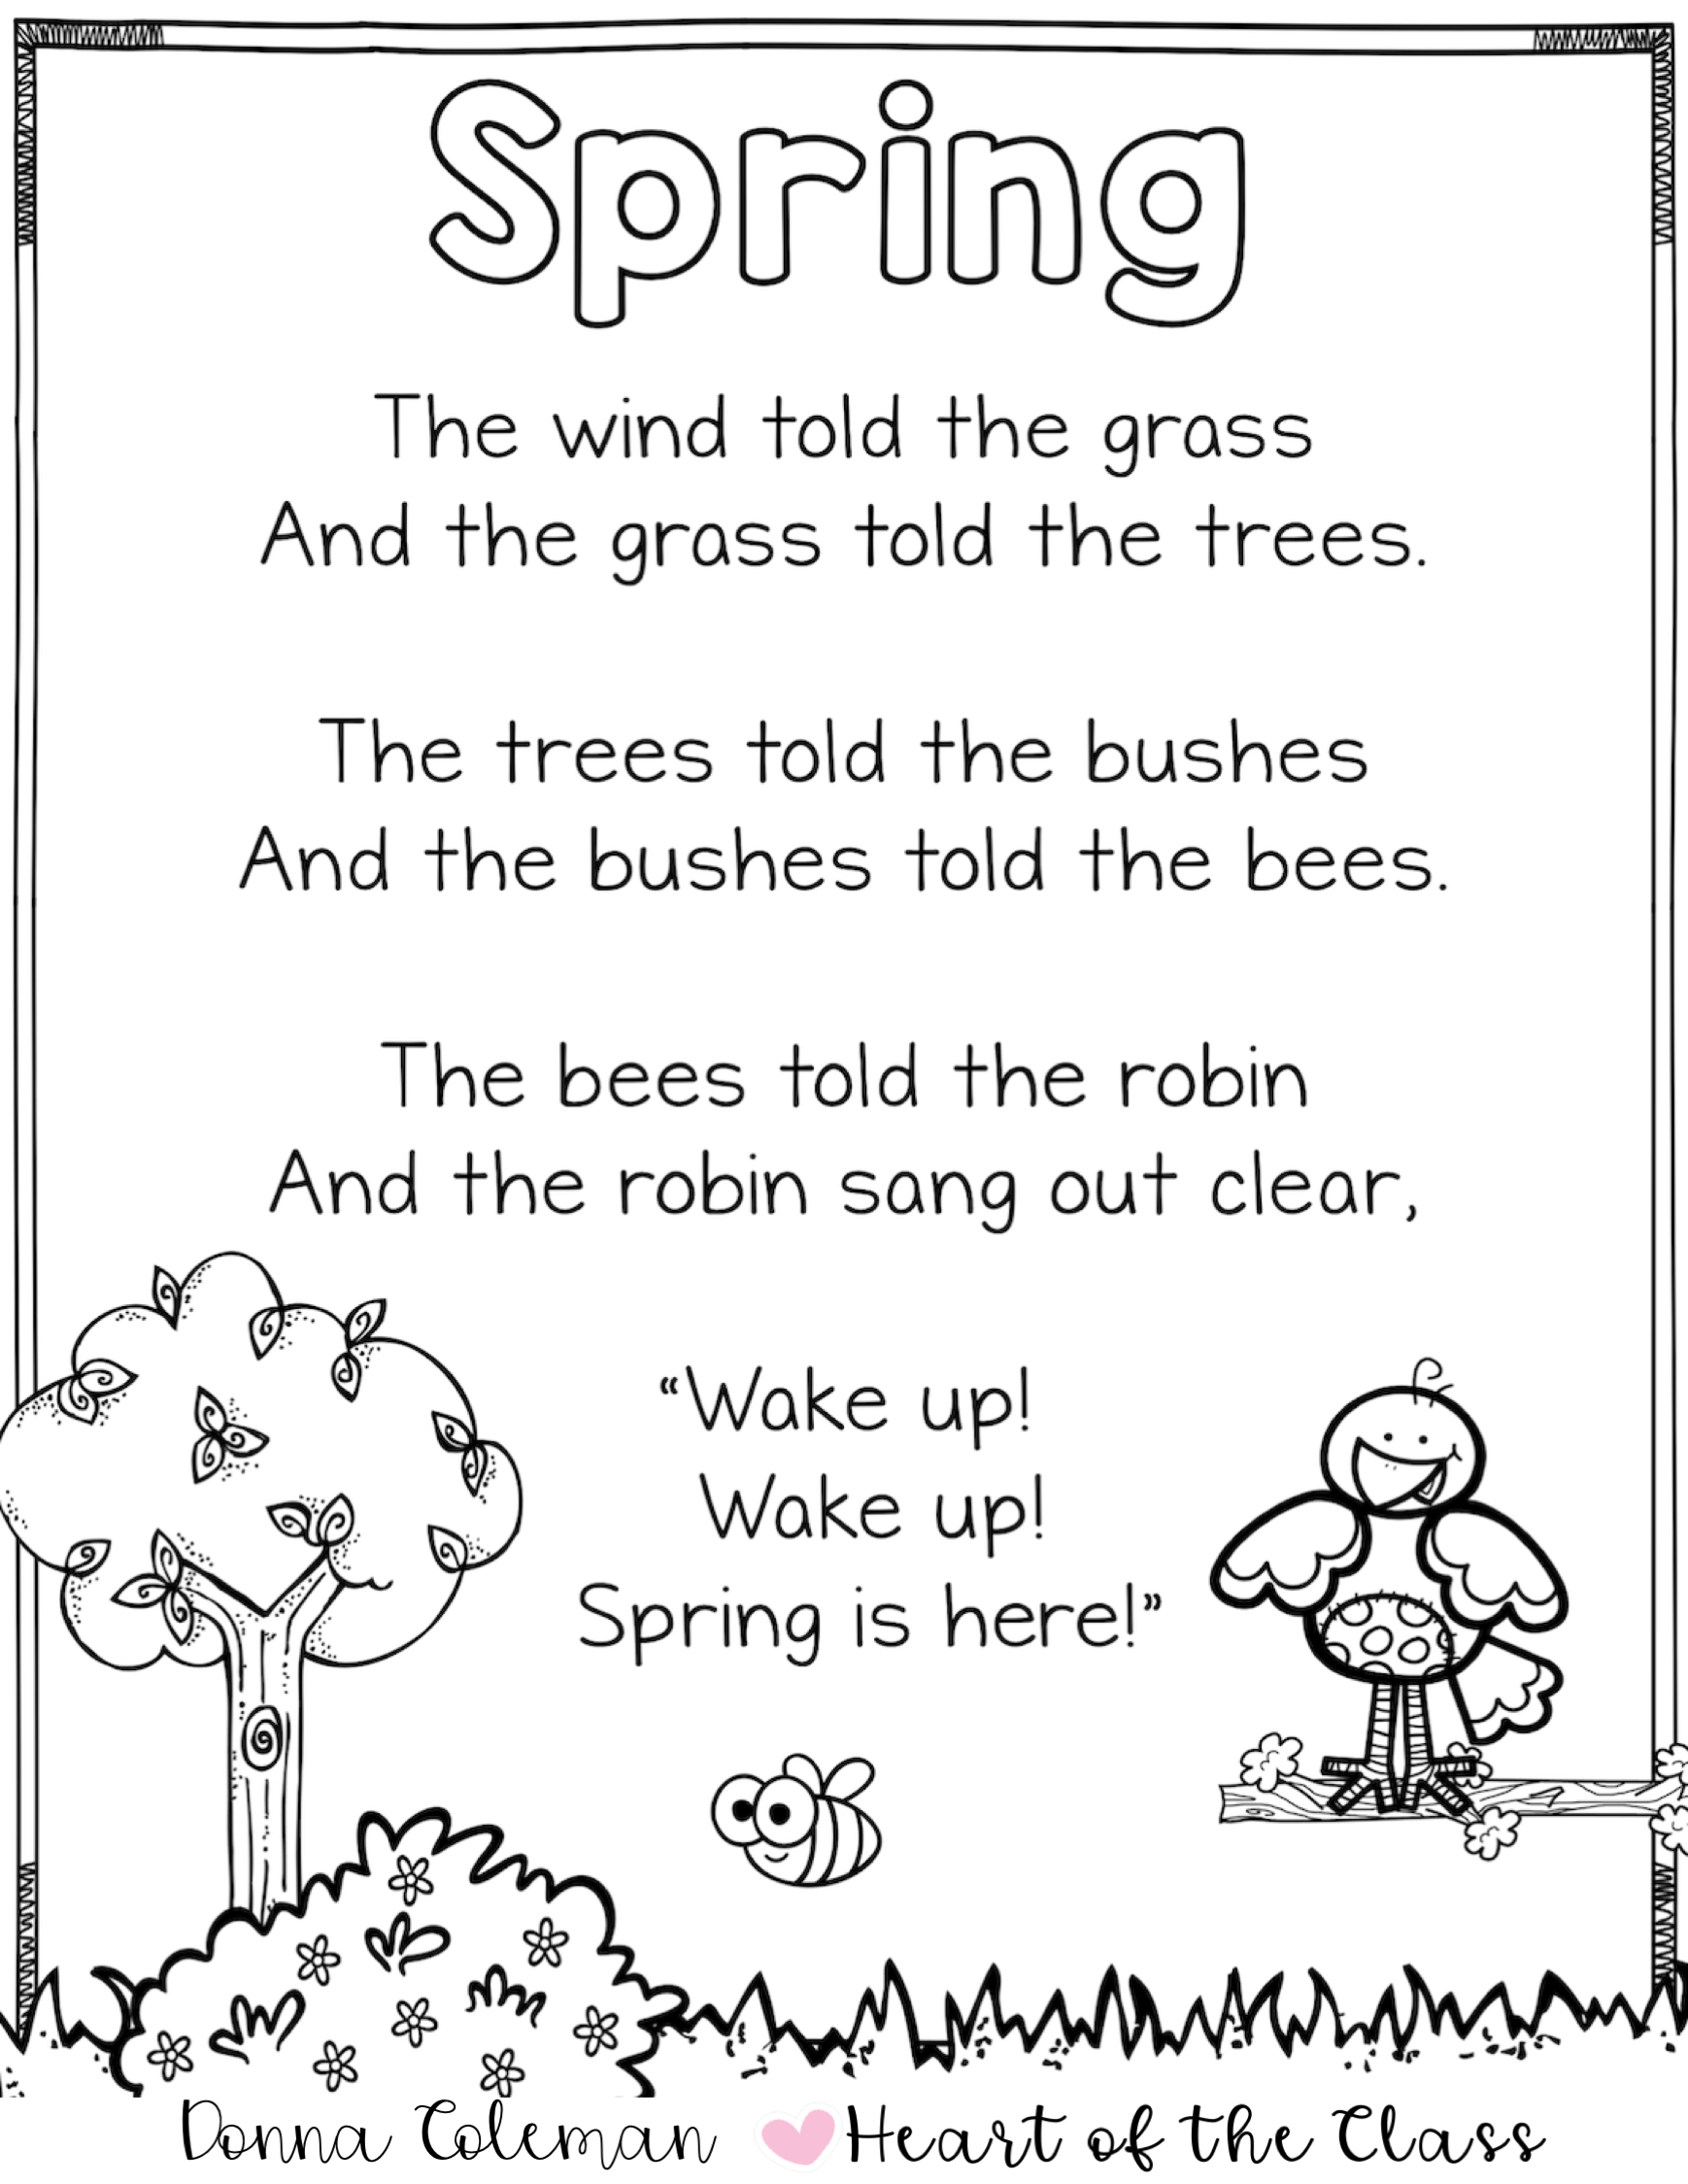 Free Download Of This Classic Spring Poem